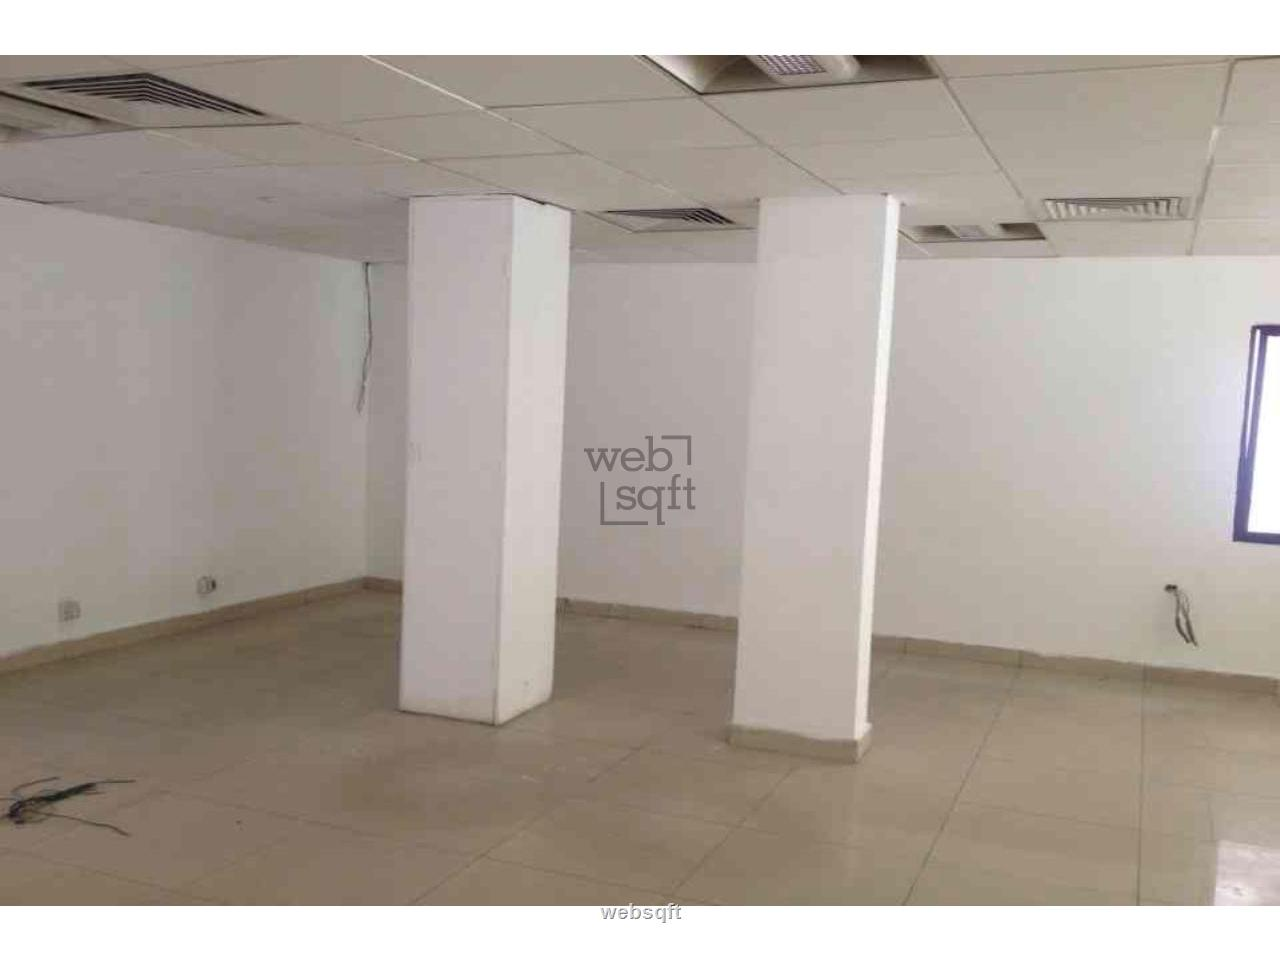 Websqft - Commercial Office Space - Property for Sale - in 3000Sq-ft/Madhapur at Rs 21000000